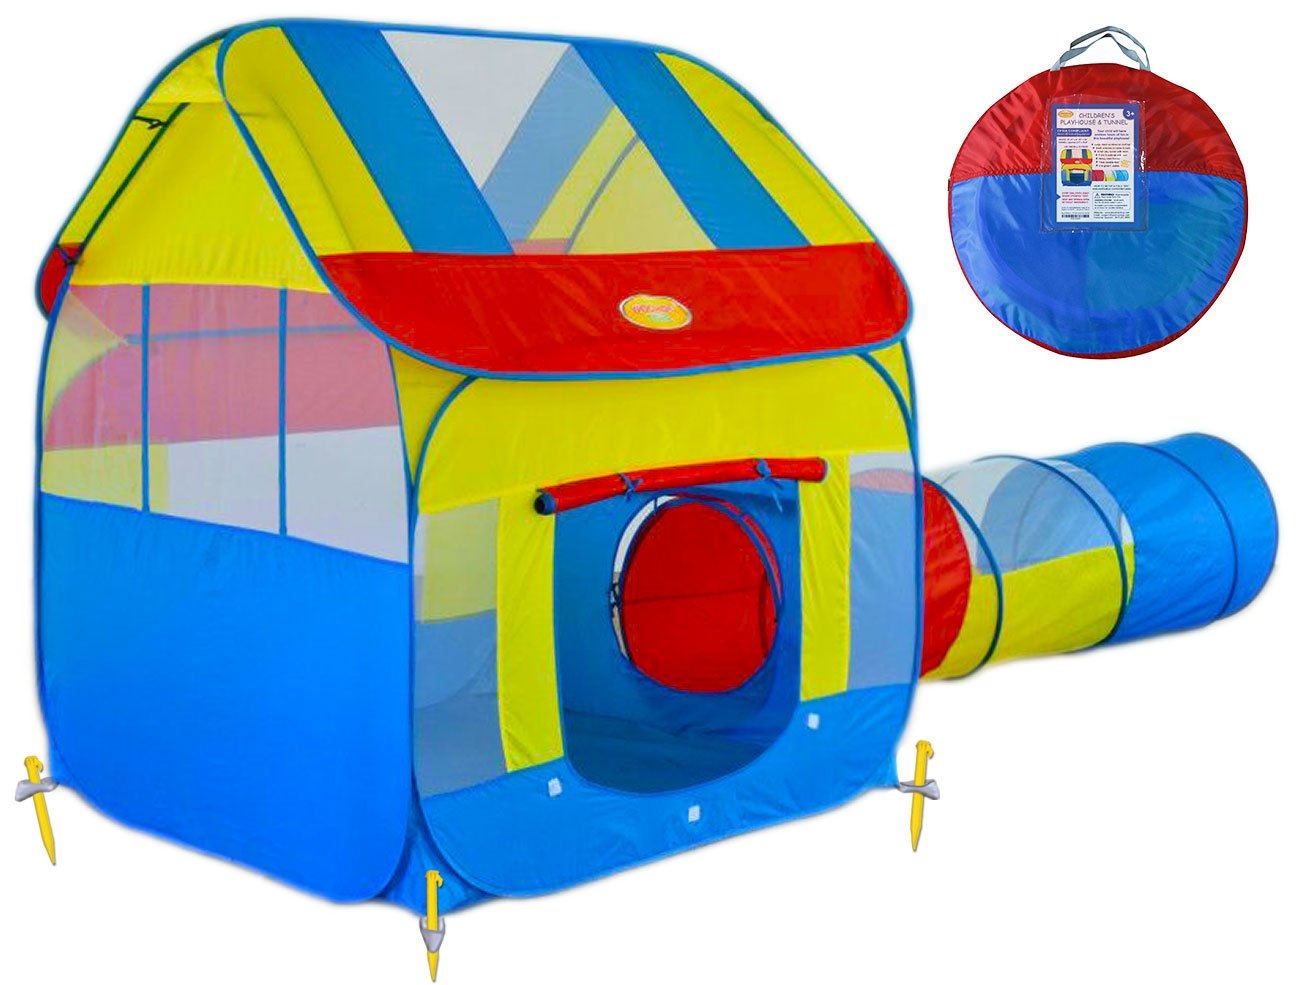 Amazon.com: Big Children Play Tent with Tunnel - Pop-Up into Playhouse Tent  for Indoor/Outdoor with Stakes for Boys or Girls, Good for Kids to Pretend  Play, ...